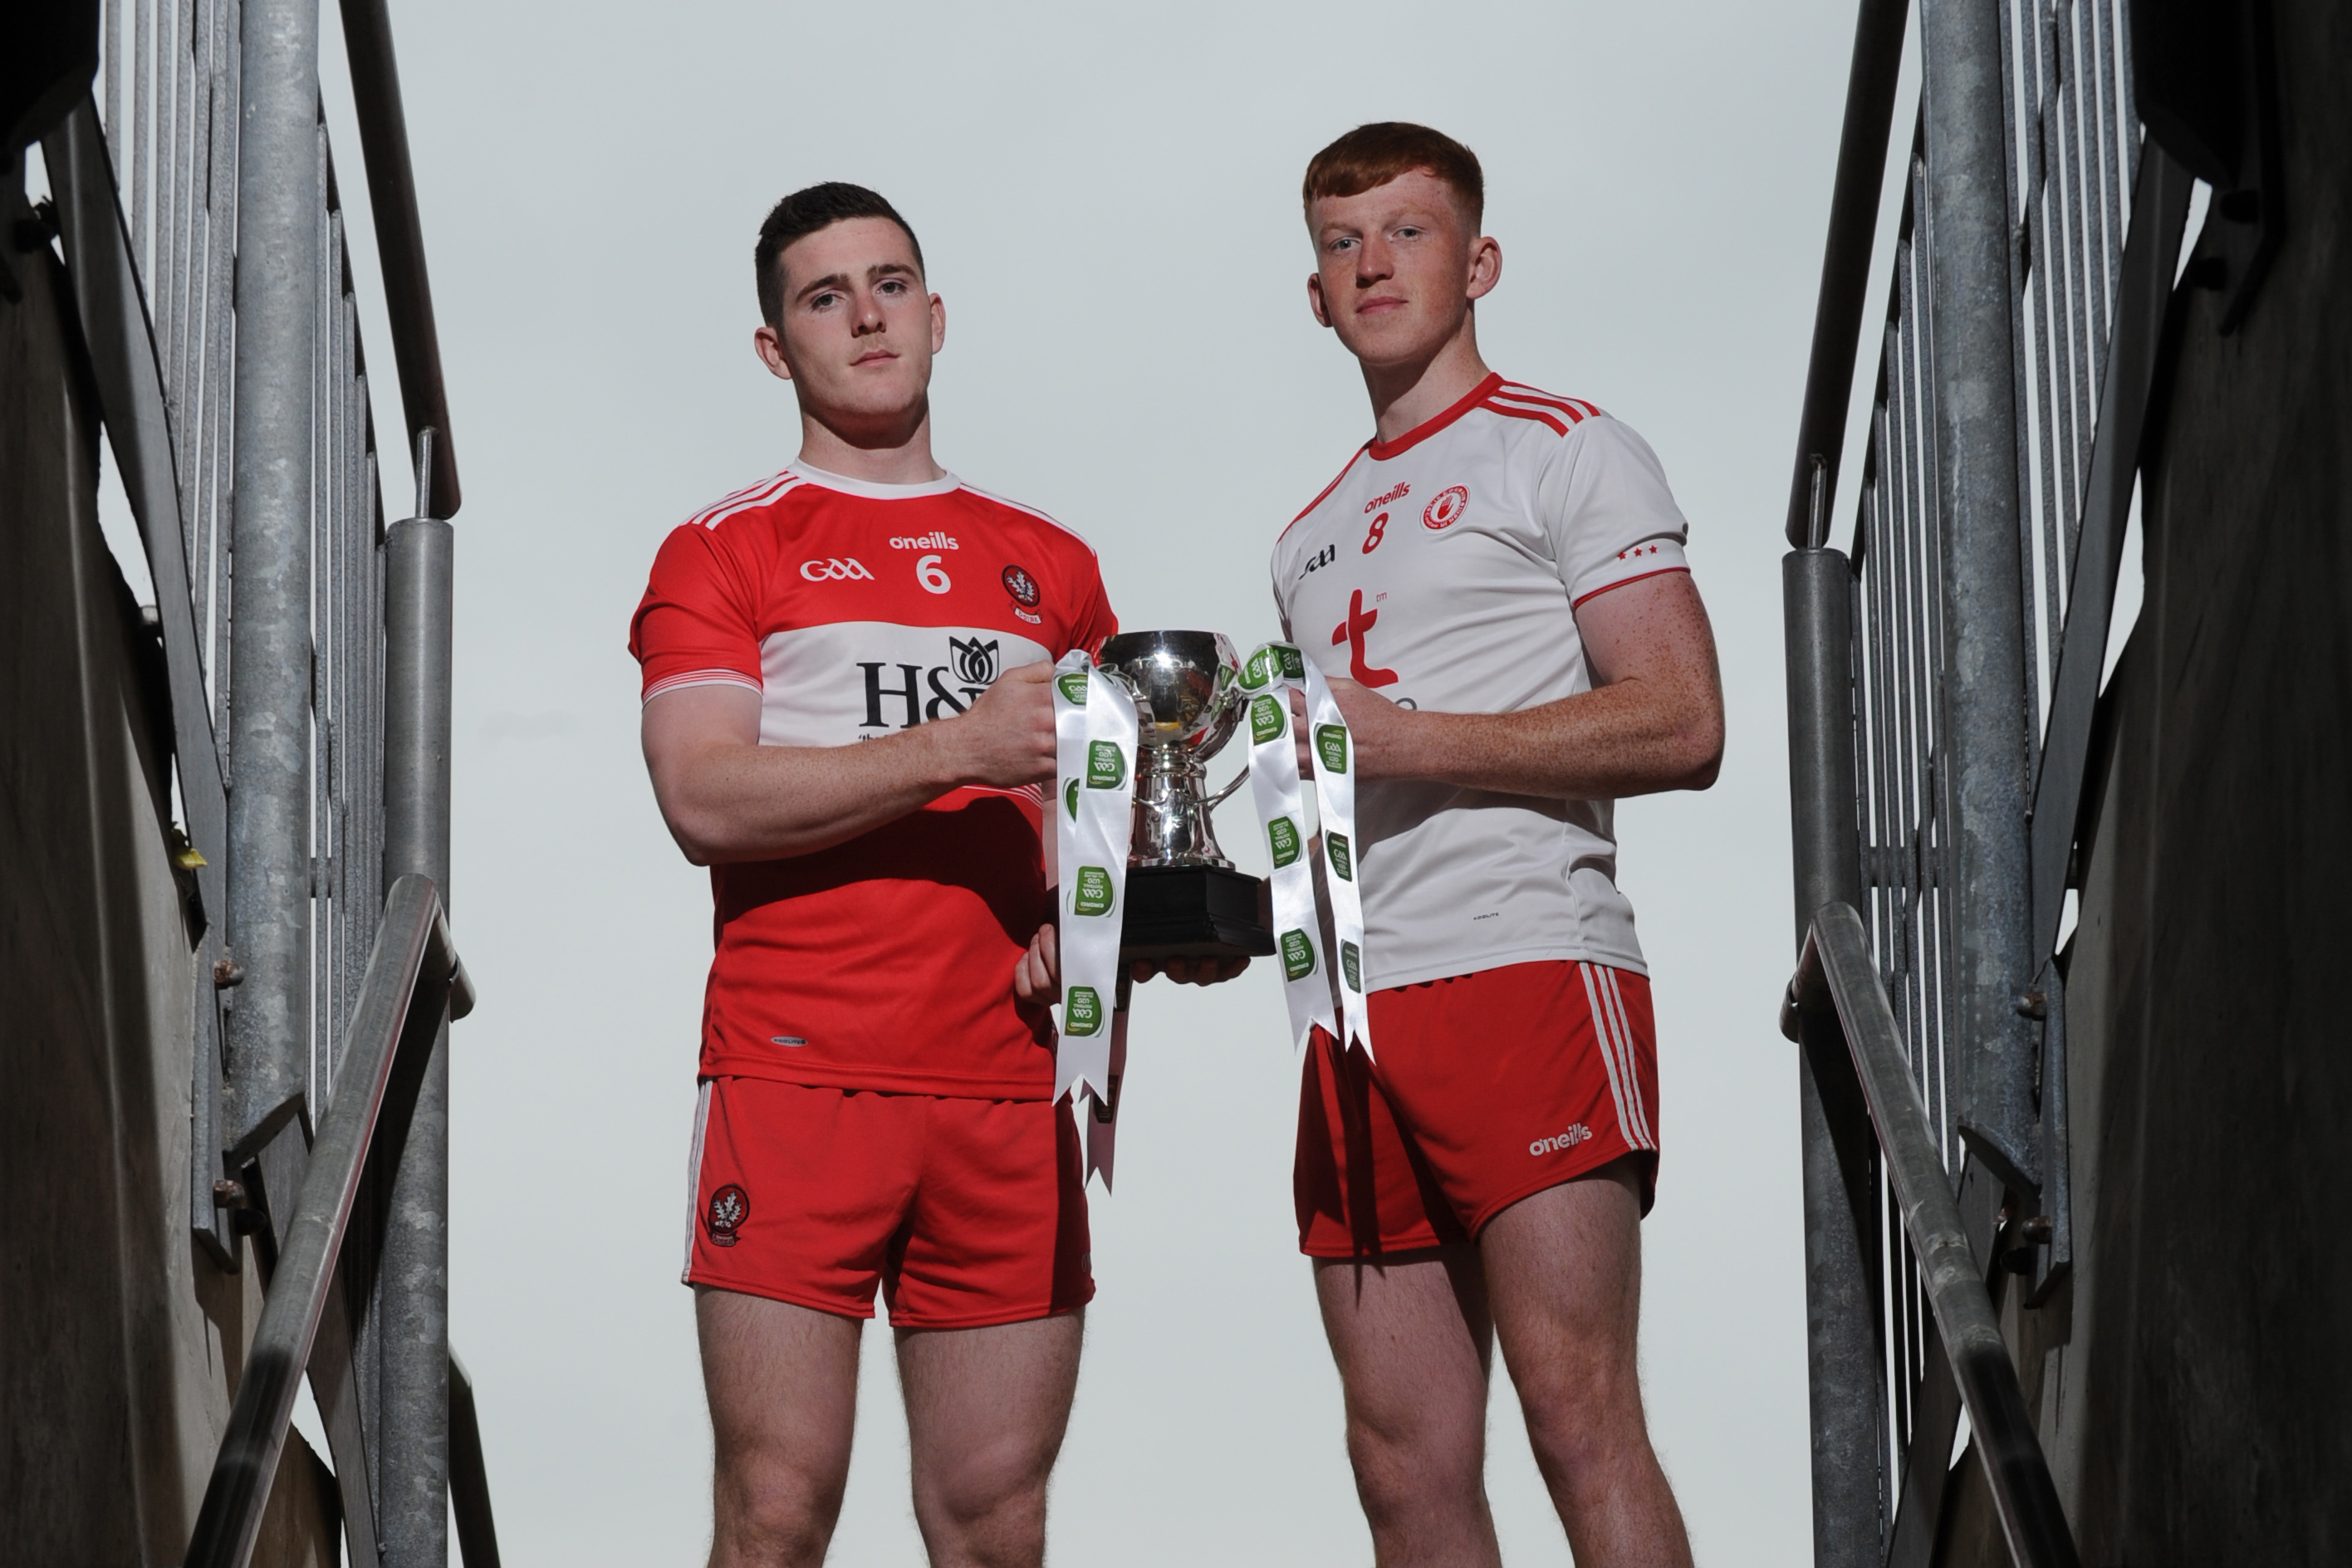 PREVIEW: Derry and Tyrone set to lock horns for Córn Dónall Ó Murchú